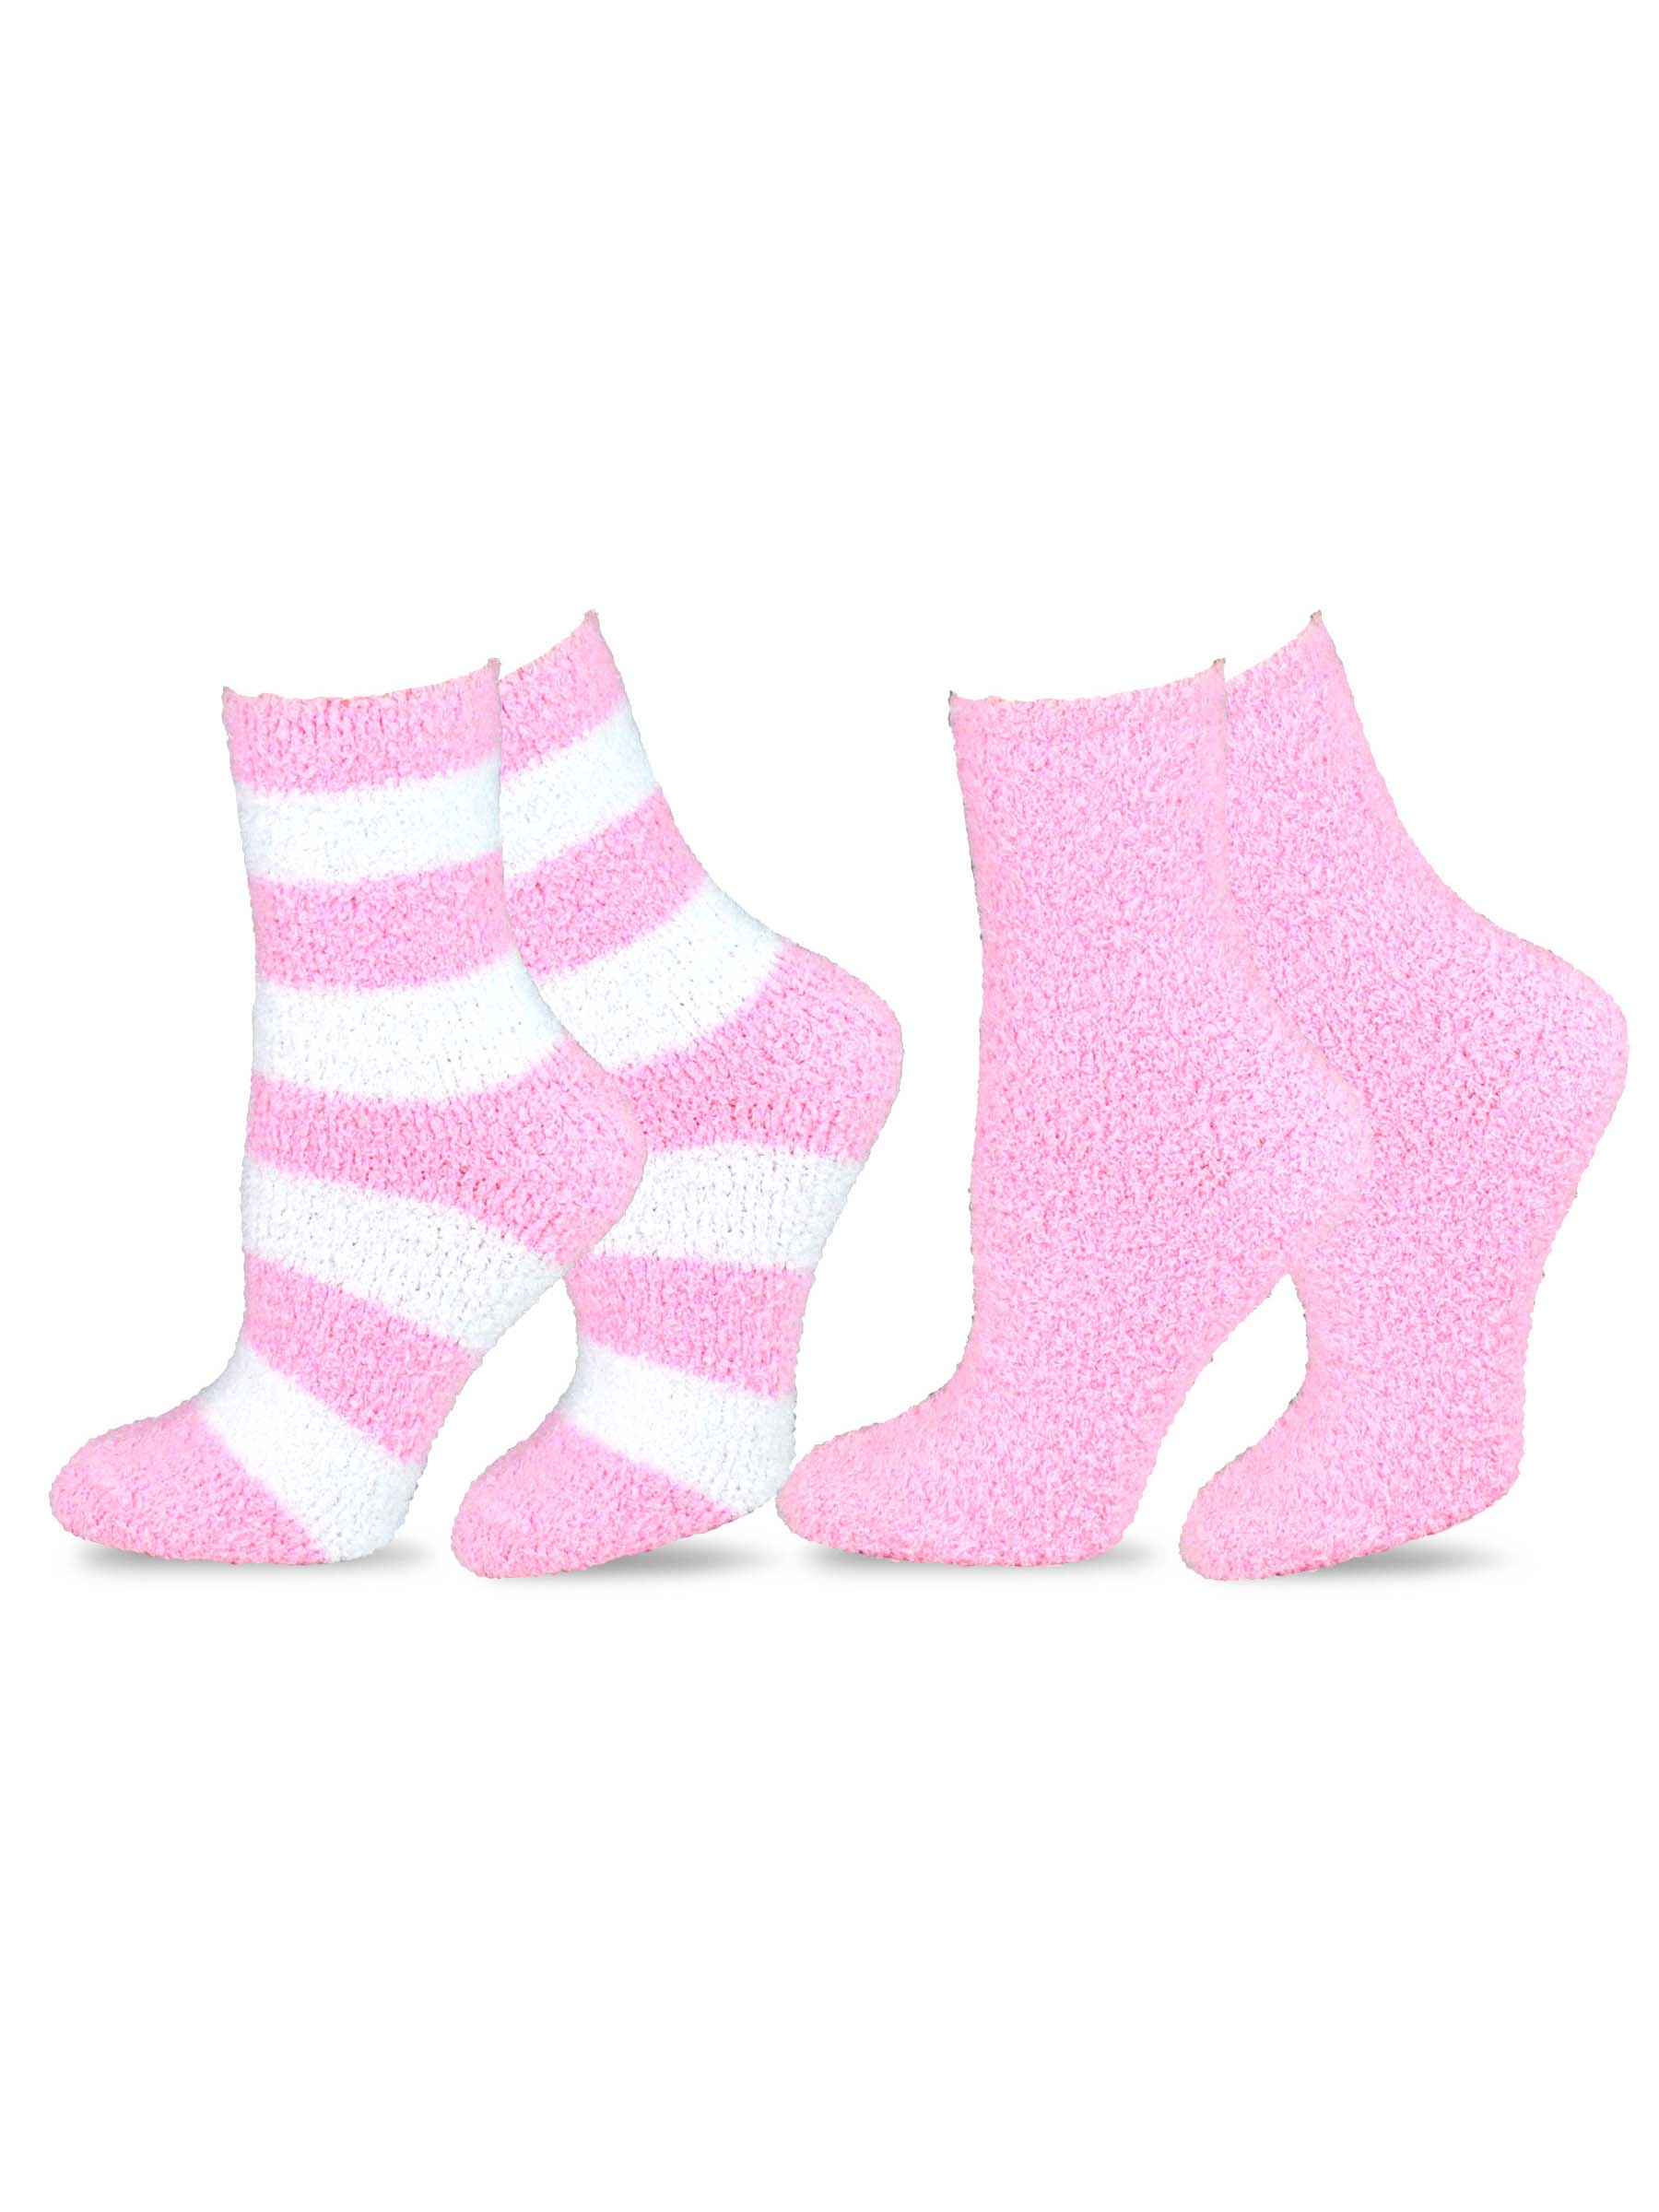 TeeHee Fashionable Cozy Fuzzy Slipper Women's 2 Pairs Crew Socks